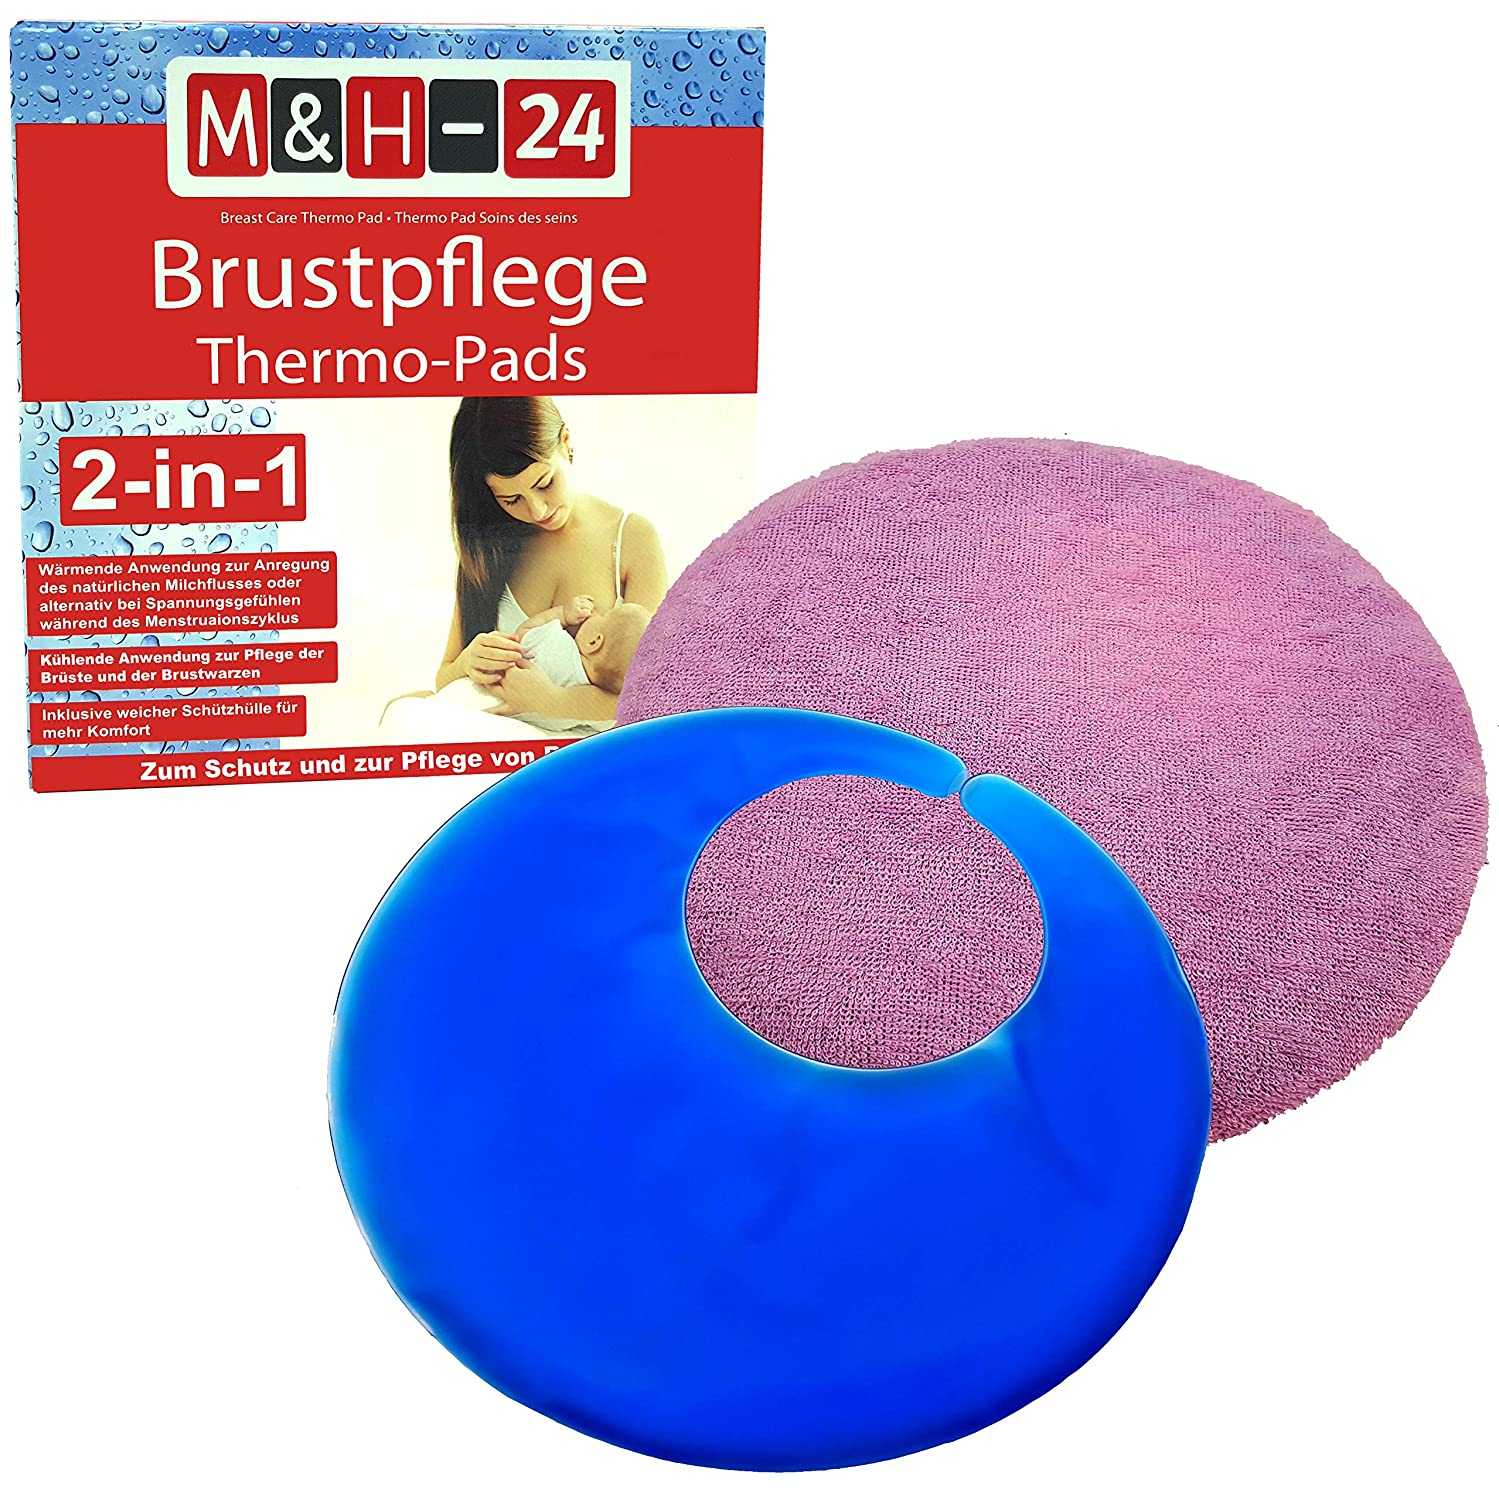 M&H-24 Breast Care Thermal Pads Gel Cooling Pad - Warming & Cooling Application for Wound Breast Warts with Protective Case Cold Therapy & Heat Therapy for Breastfeeding Set of 2